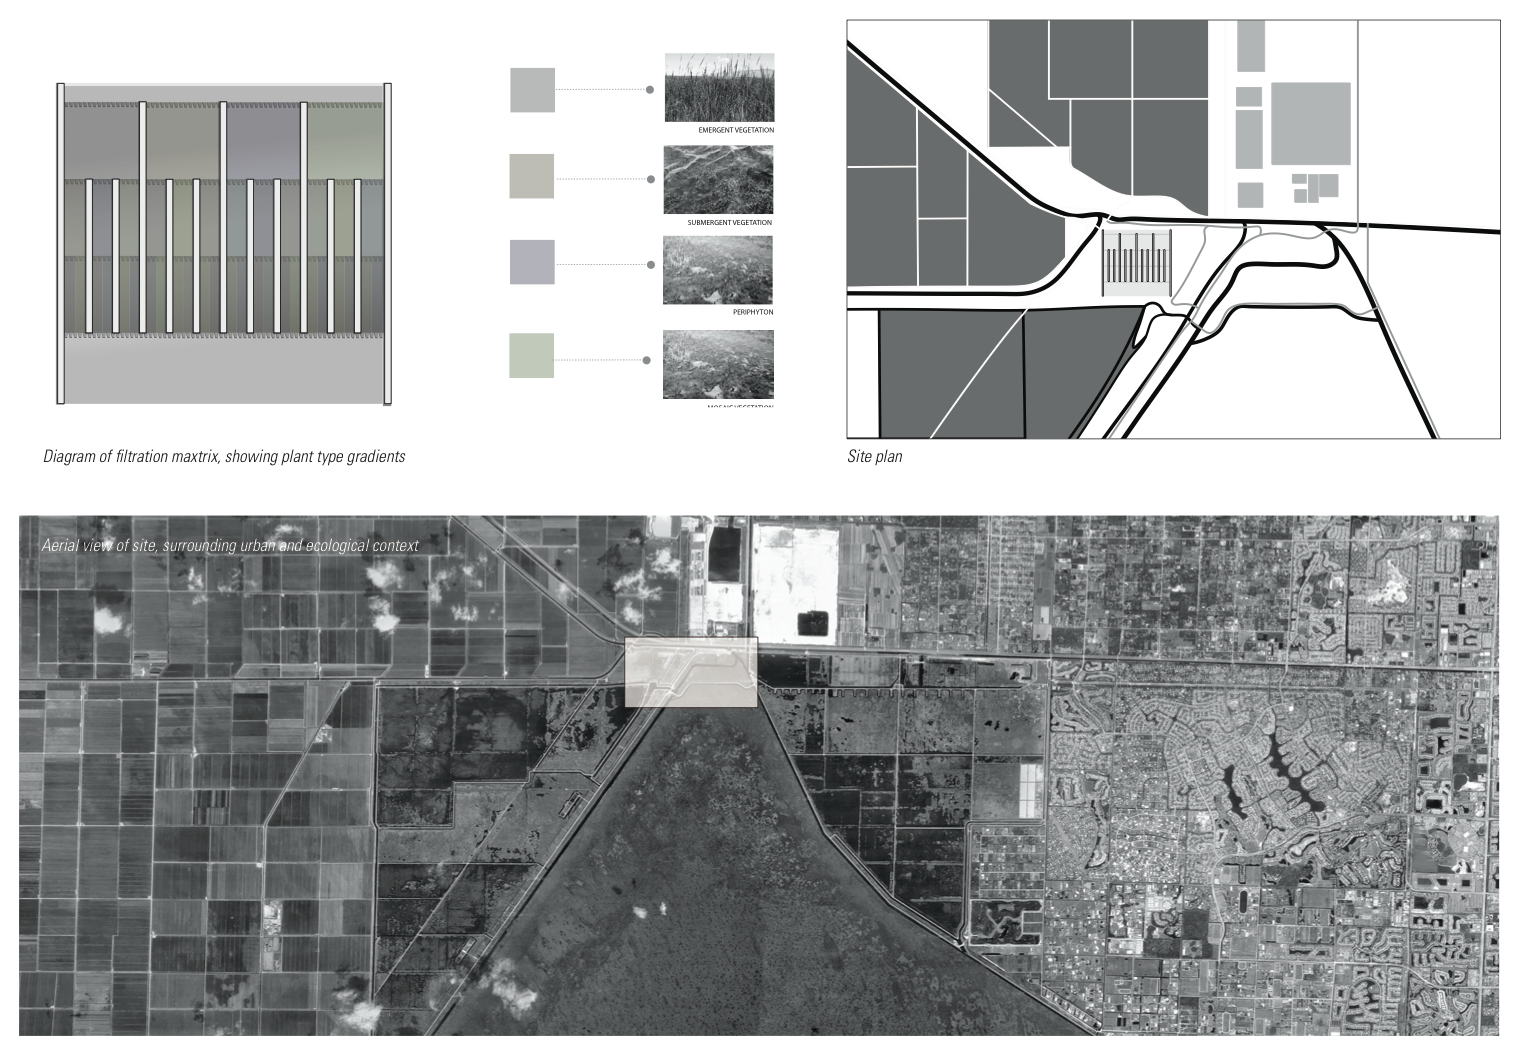 Filtration matrix layout, depicting biological methods and permutations. Site diagram and plan of greater Loxahatchee region.